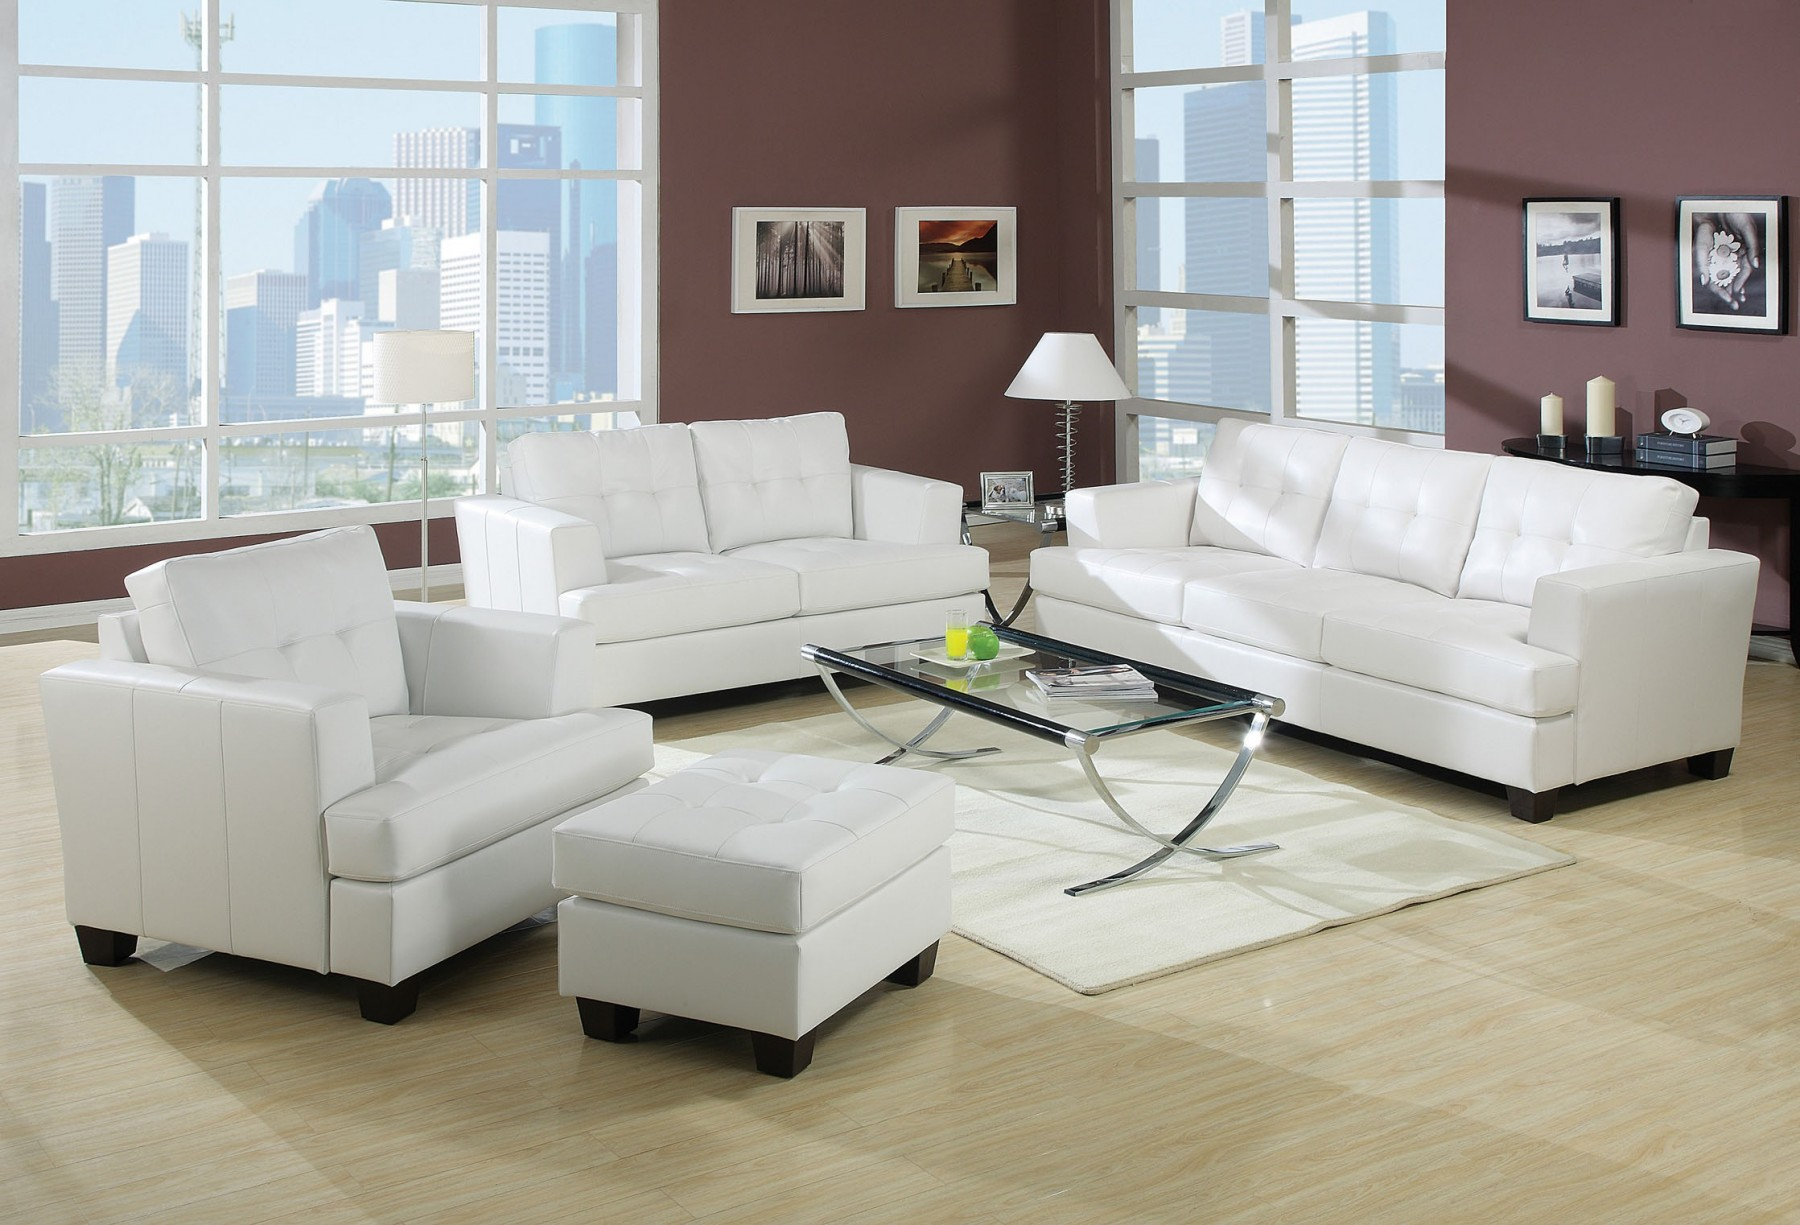 White Leather Couch Acme Platinum 2pc Living Room Furniture White Bonded Leather Sofa Loveseat